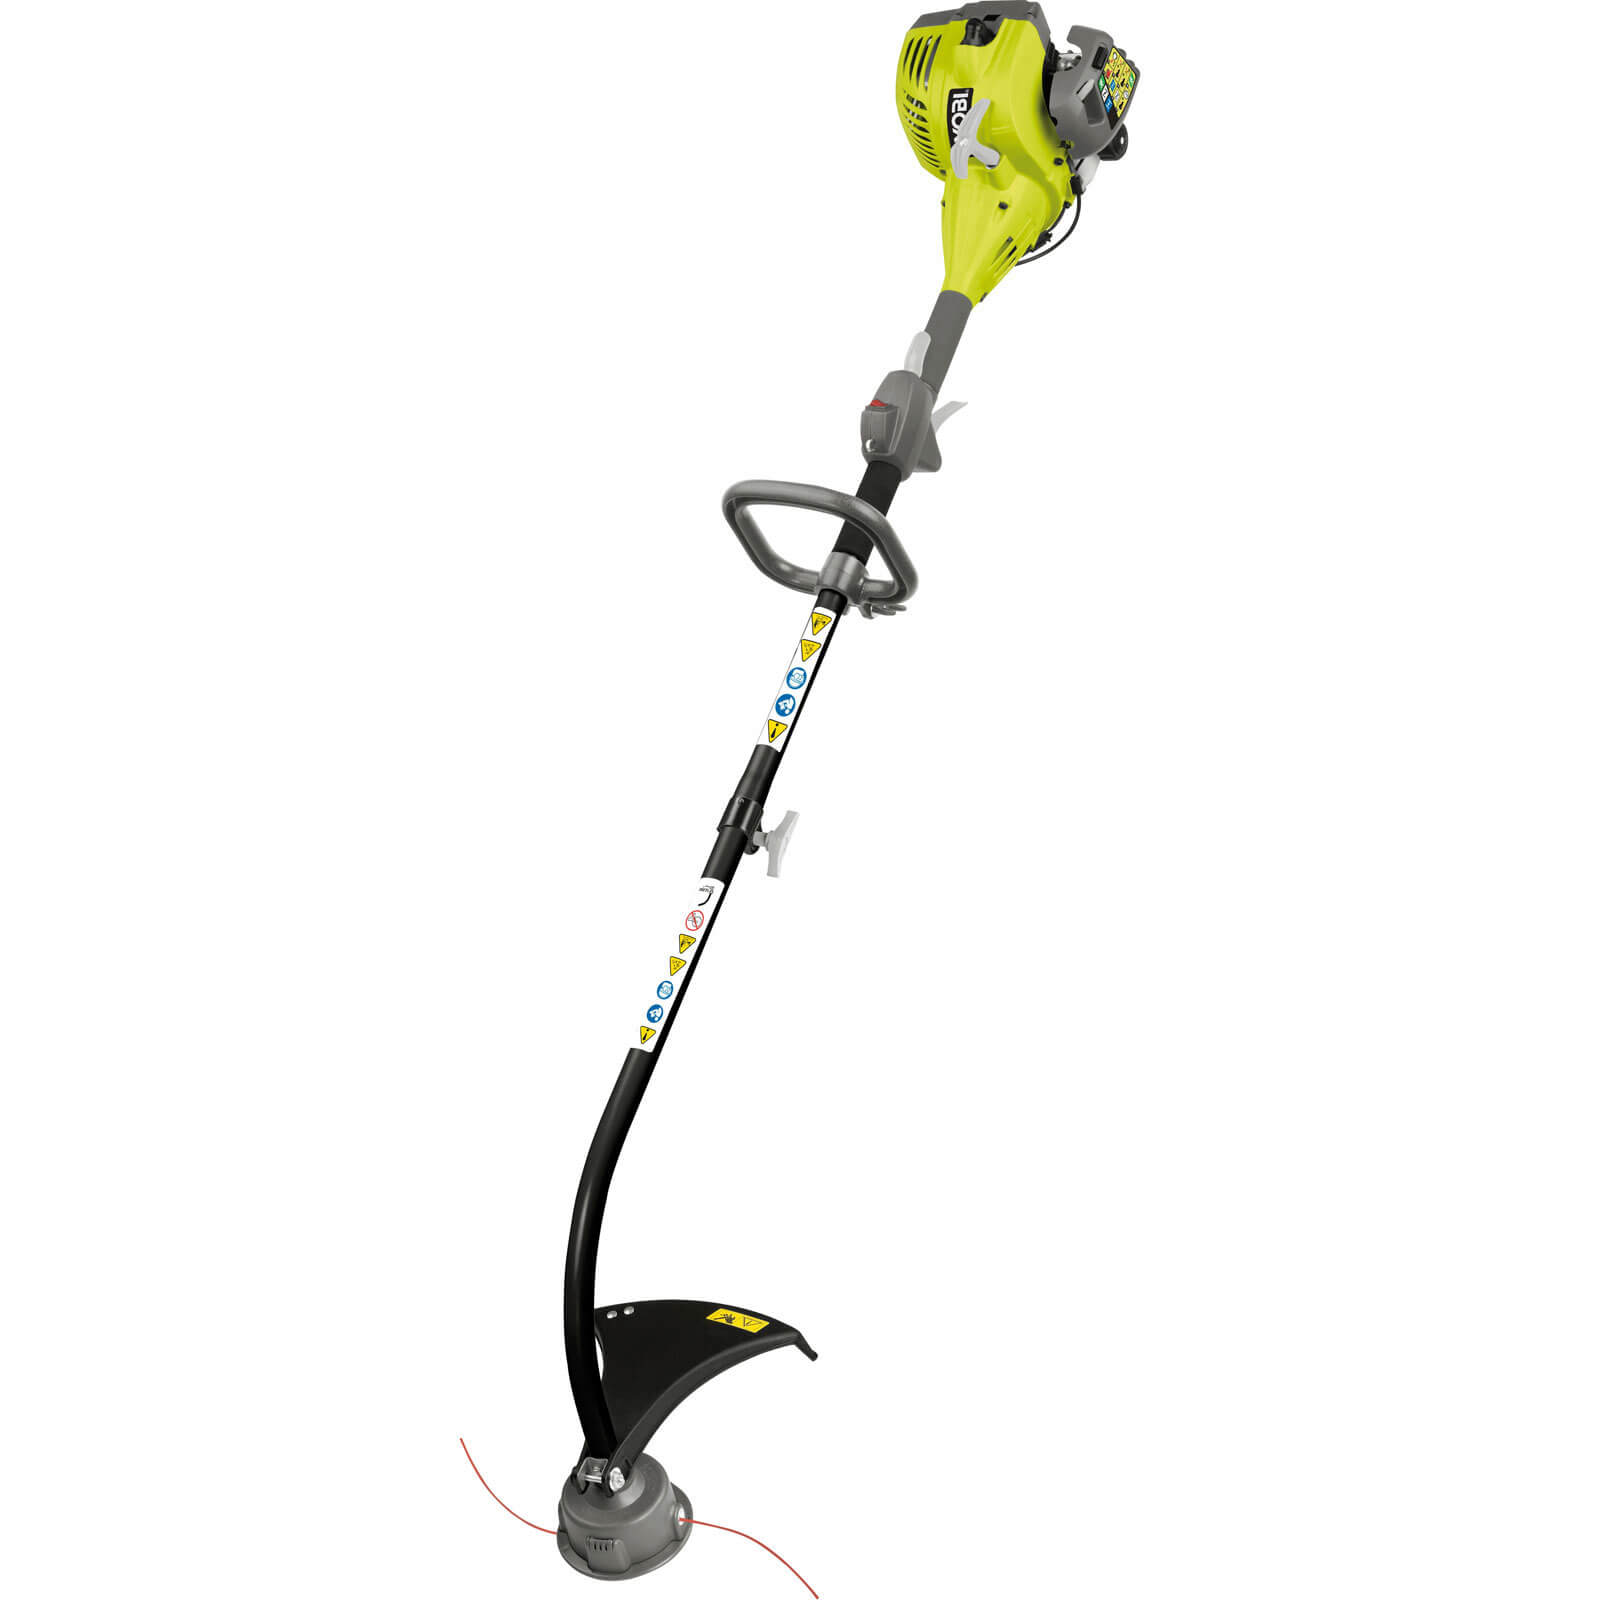 Ryobi brush cutter shop for cheap garden tools and save - Ryobi expand it ...